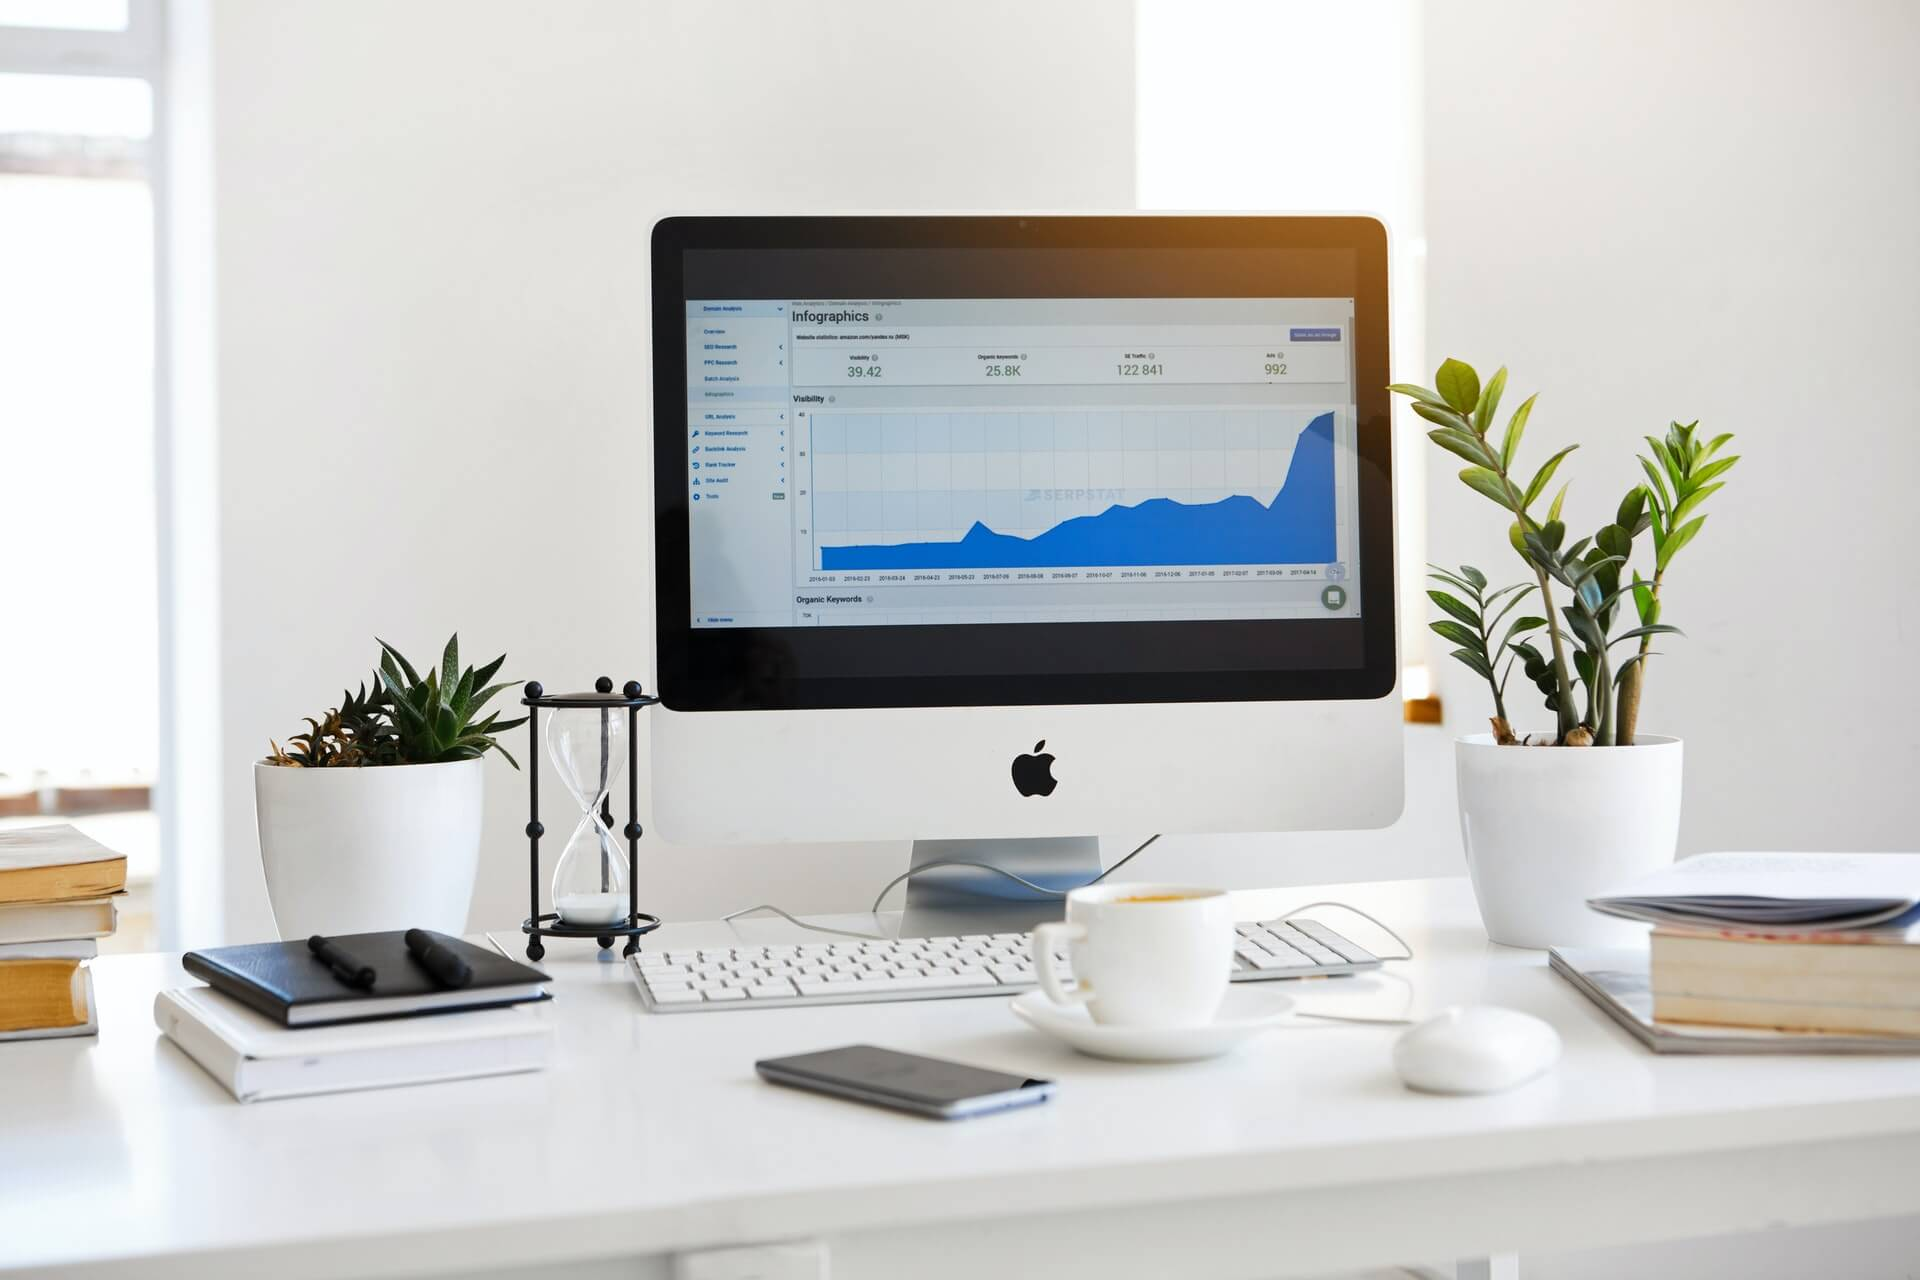 Desktop computer with analytics on the screen